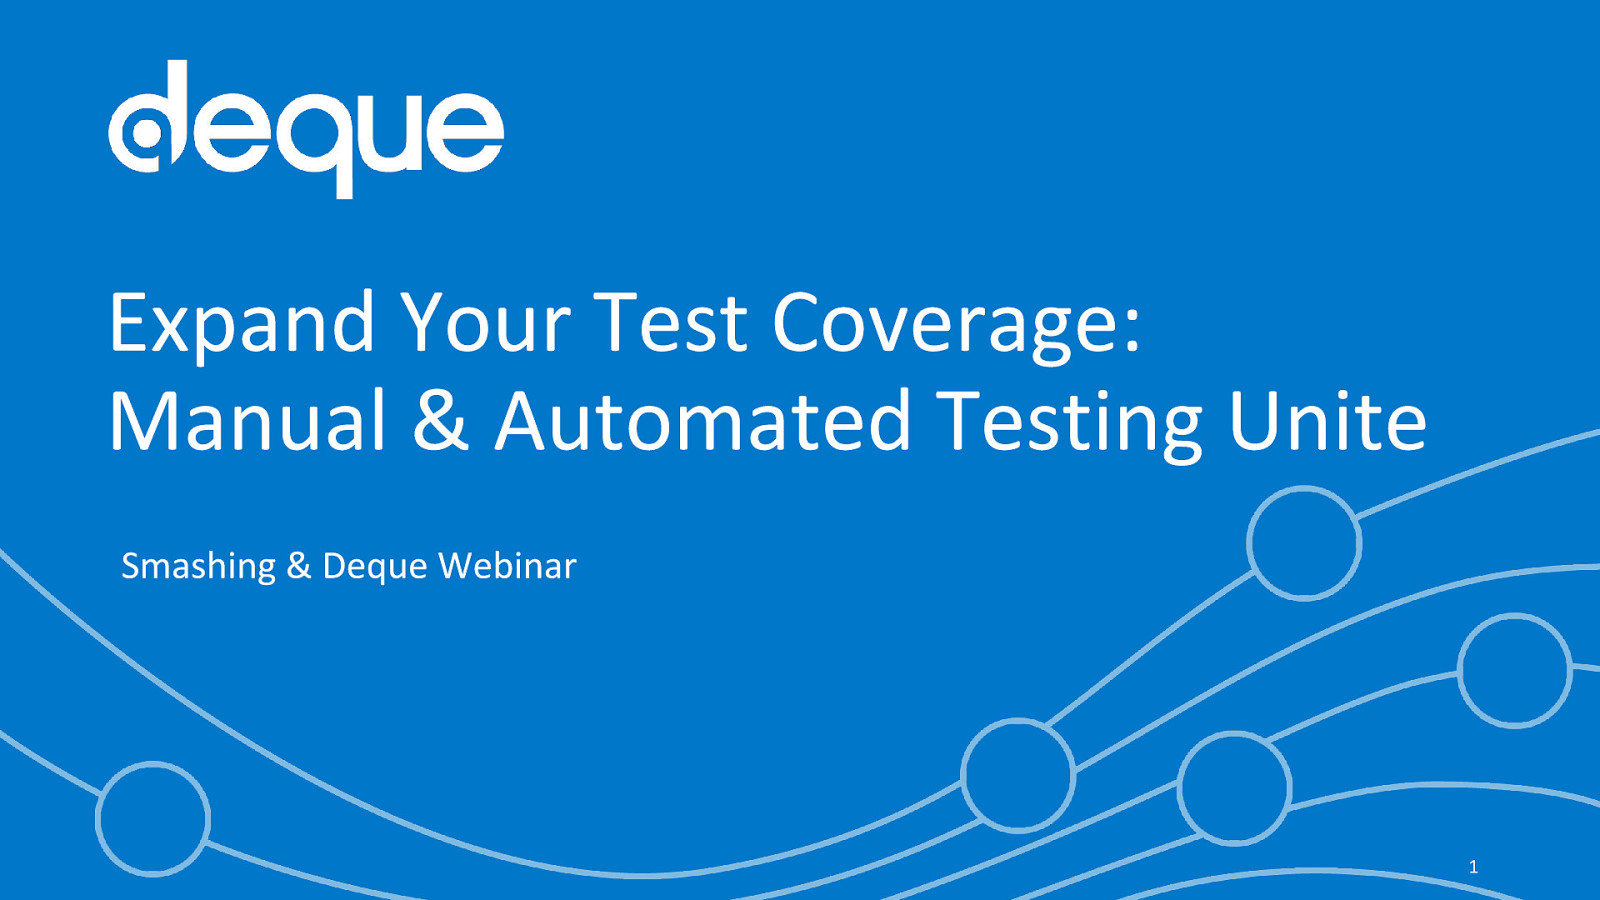 Expand Your Test Coverage: Manual And Automated Accessibility Testing Unite